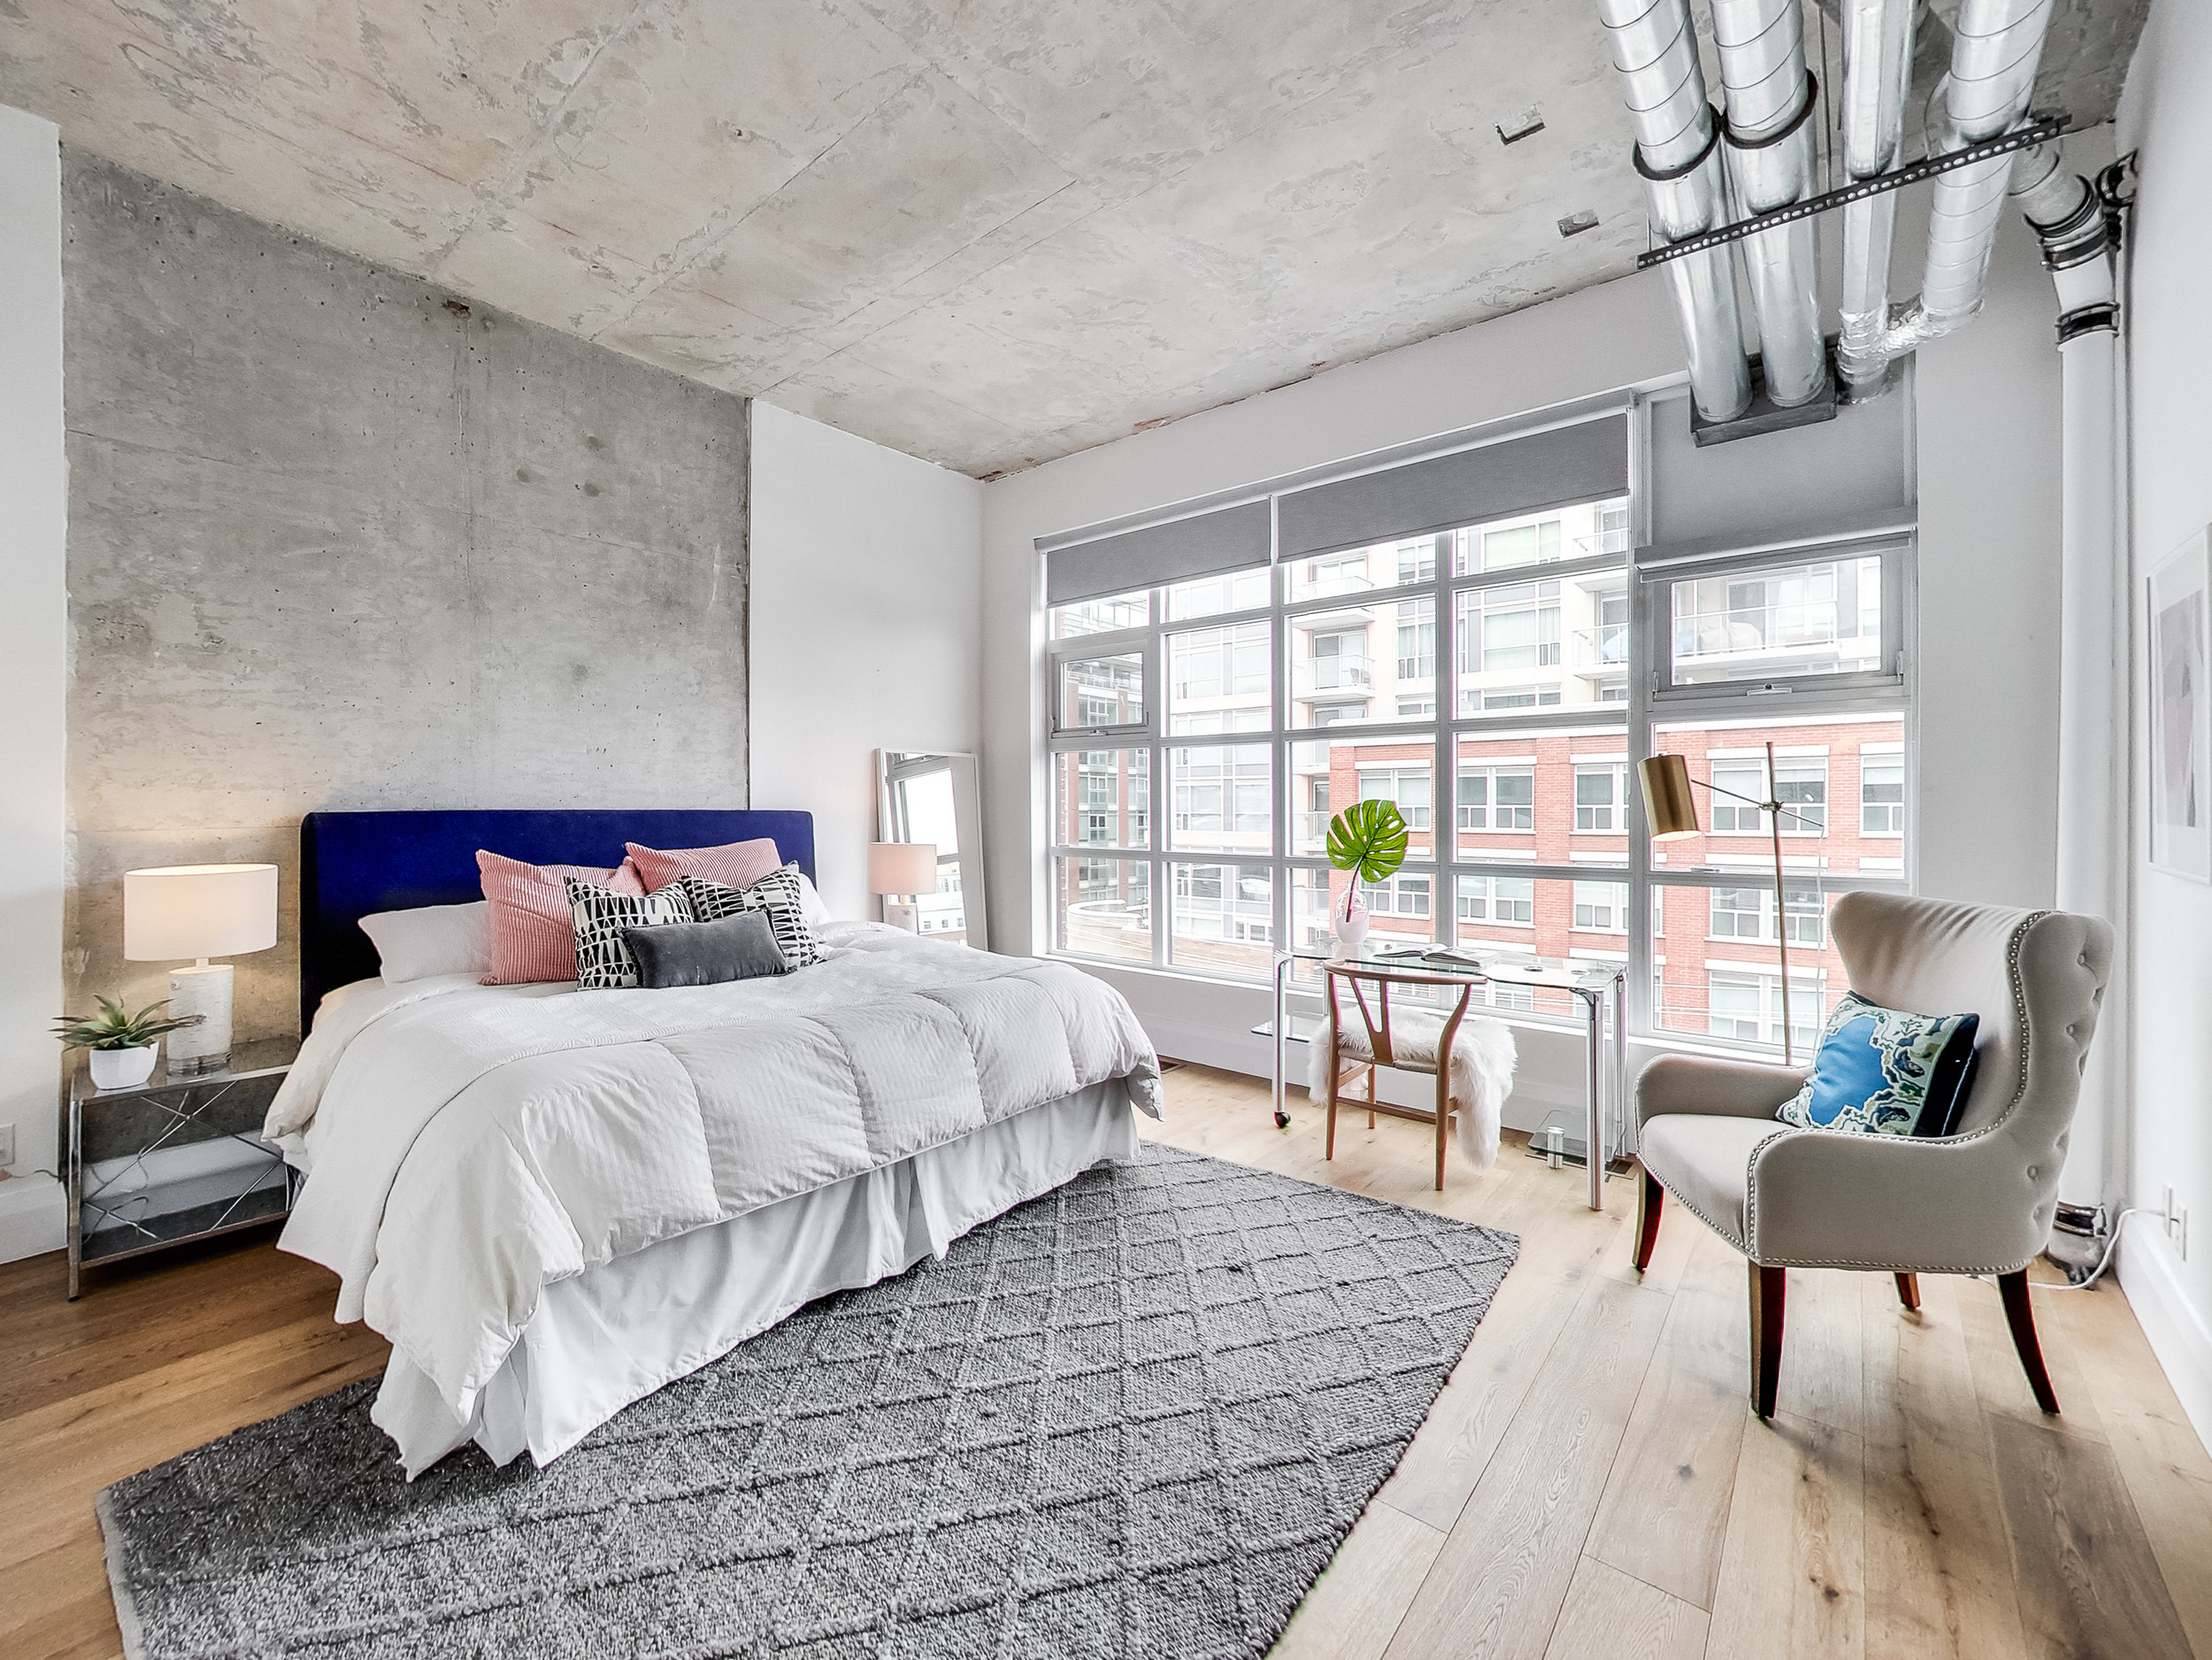 The master bedroom. I wouldn't mind waking up to this beautiful view of King Street East. There's something about old red bricked buildings that's so comforting.